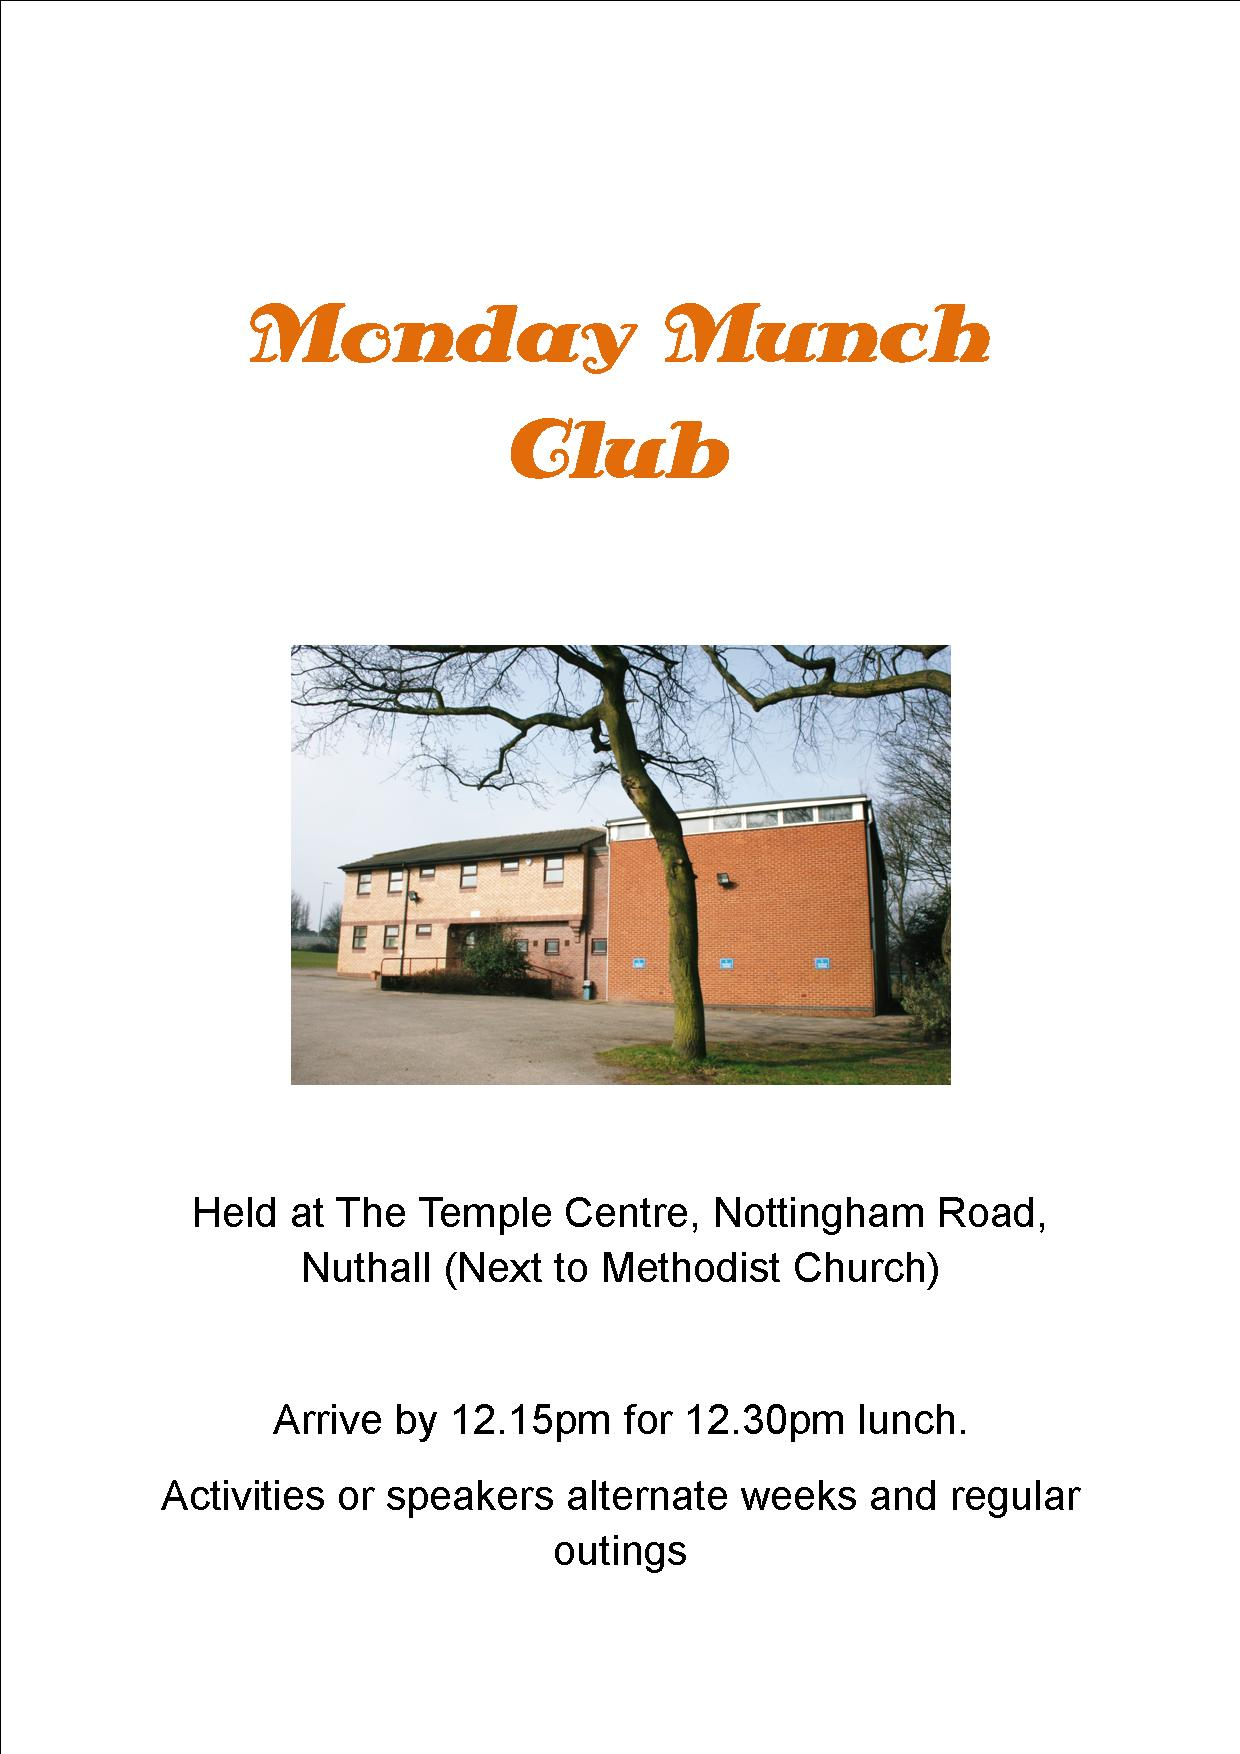 Monday Munch Club event.